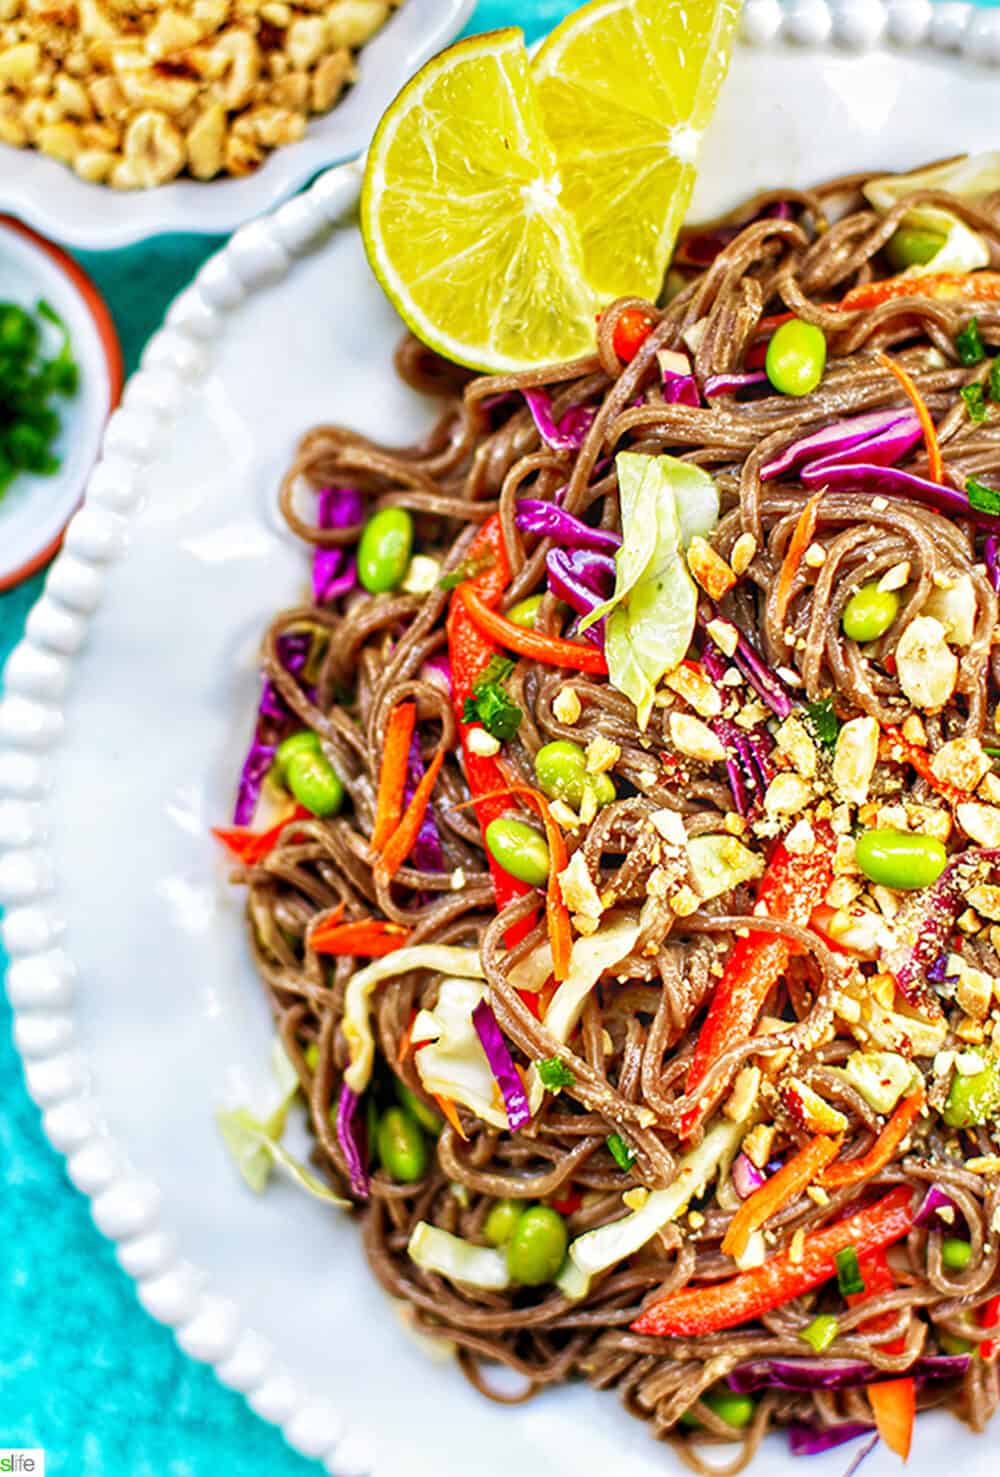 soba noodles with vegetables and peanut sauce